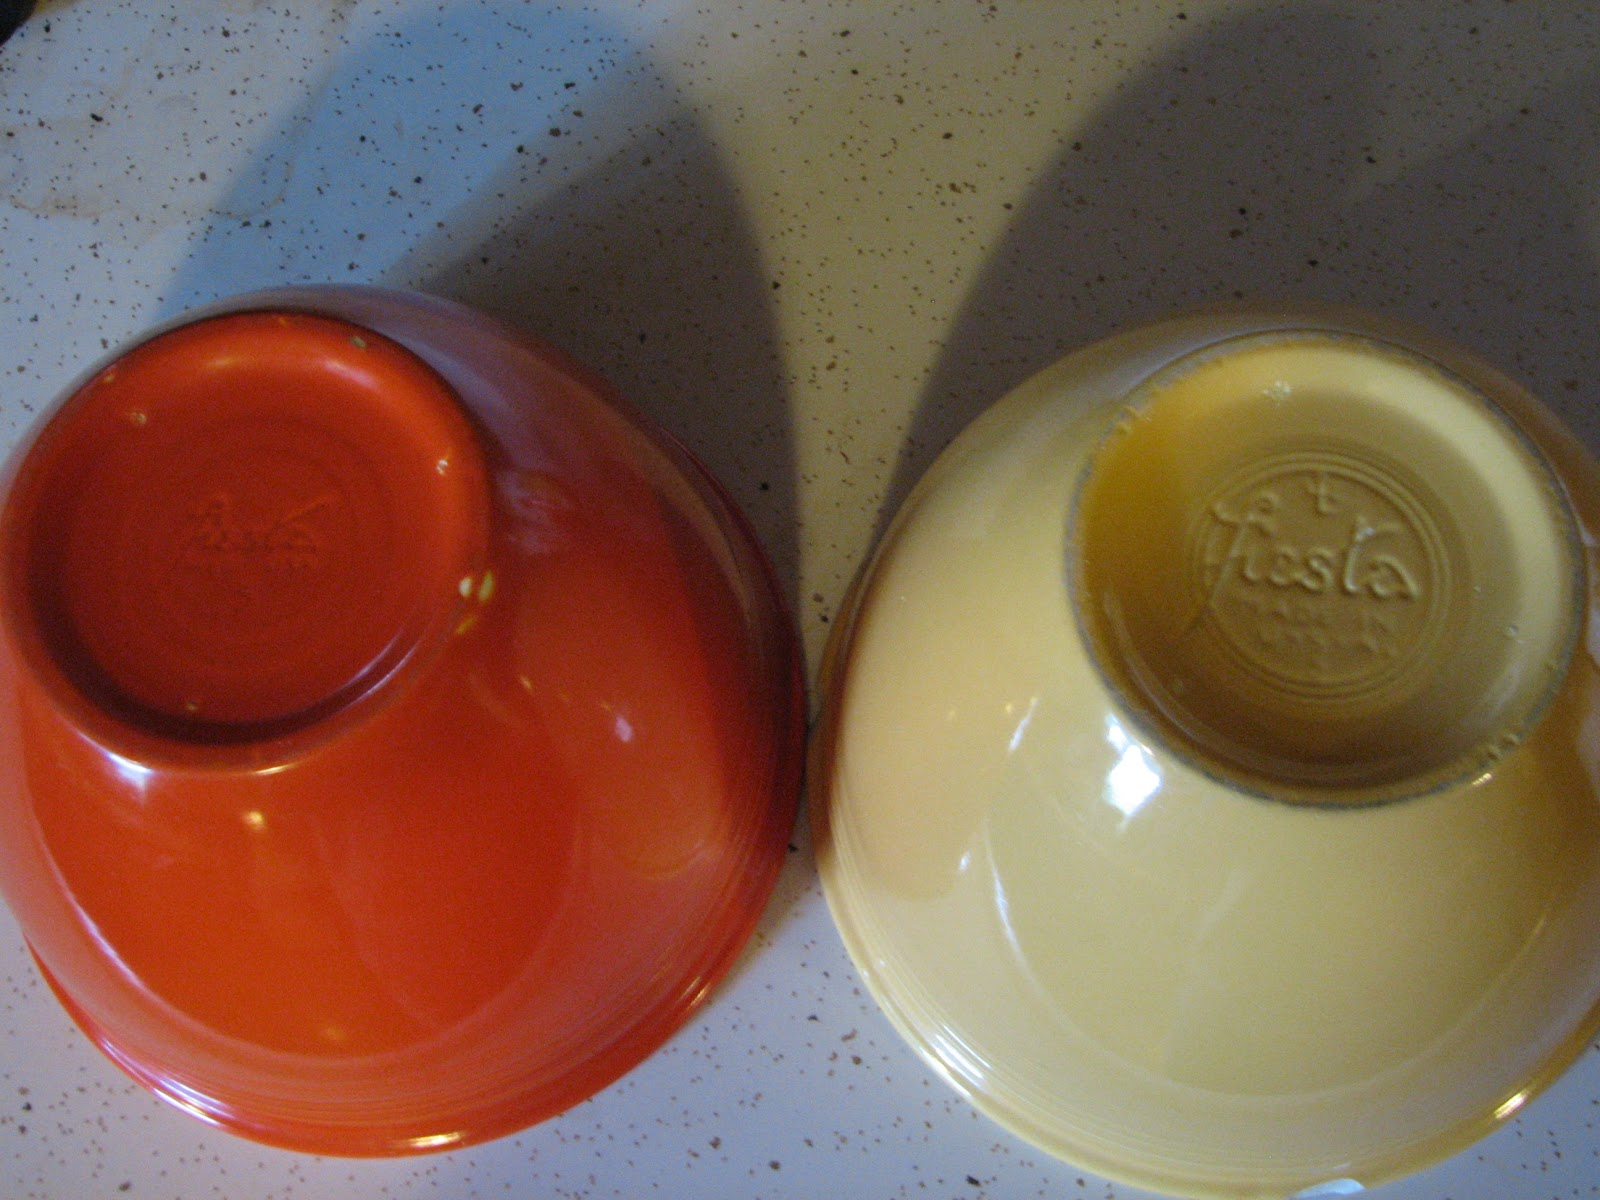 They Call This America: Vintage Fiesta mixing bowls